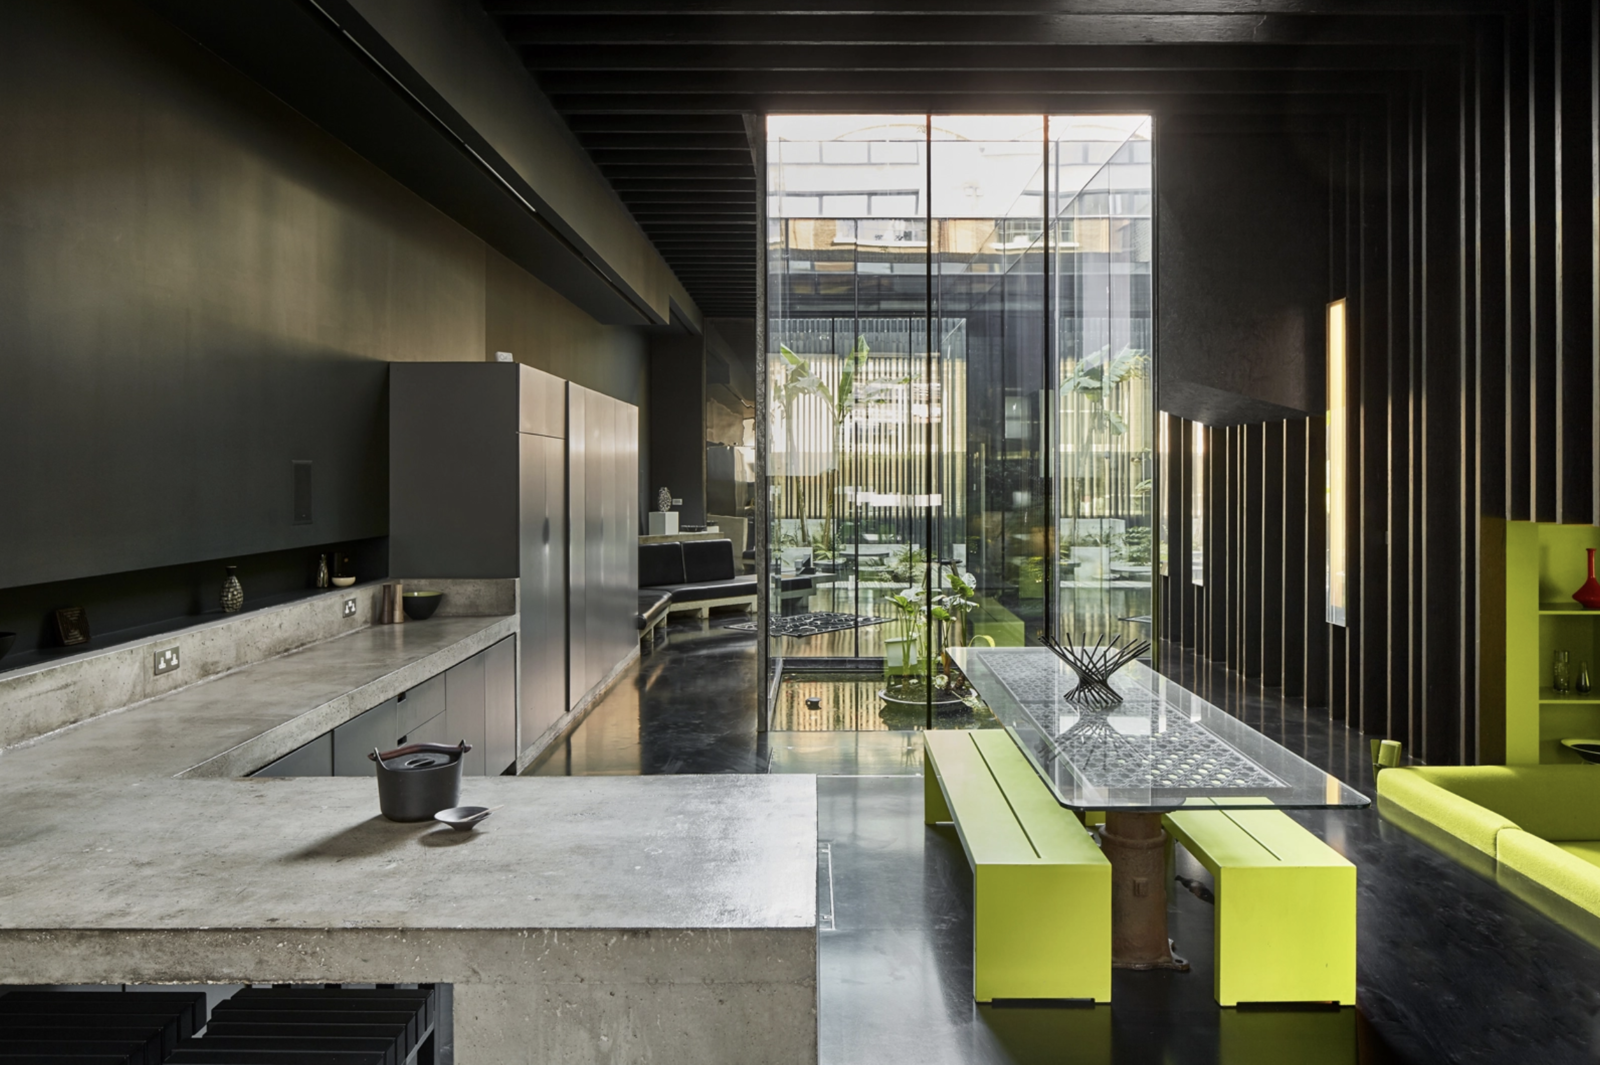 Kitchen in the Lost House by David Adjaye